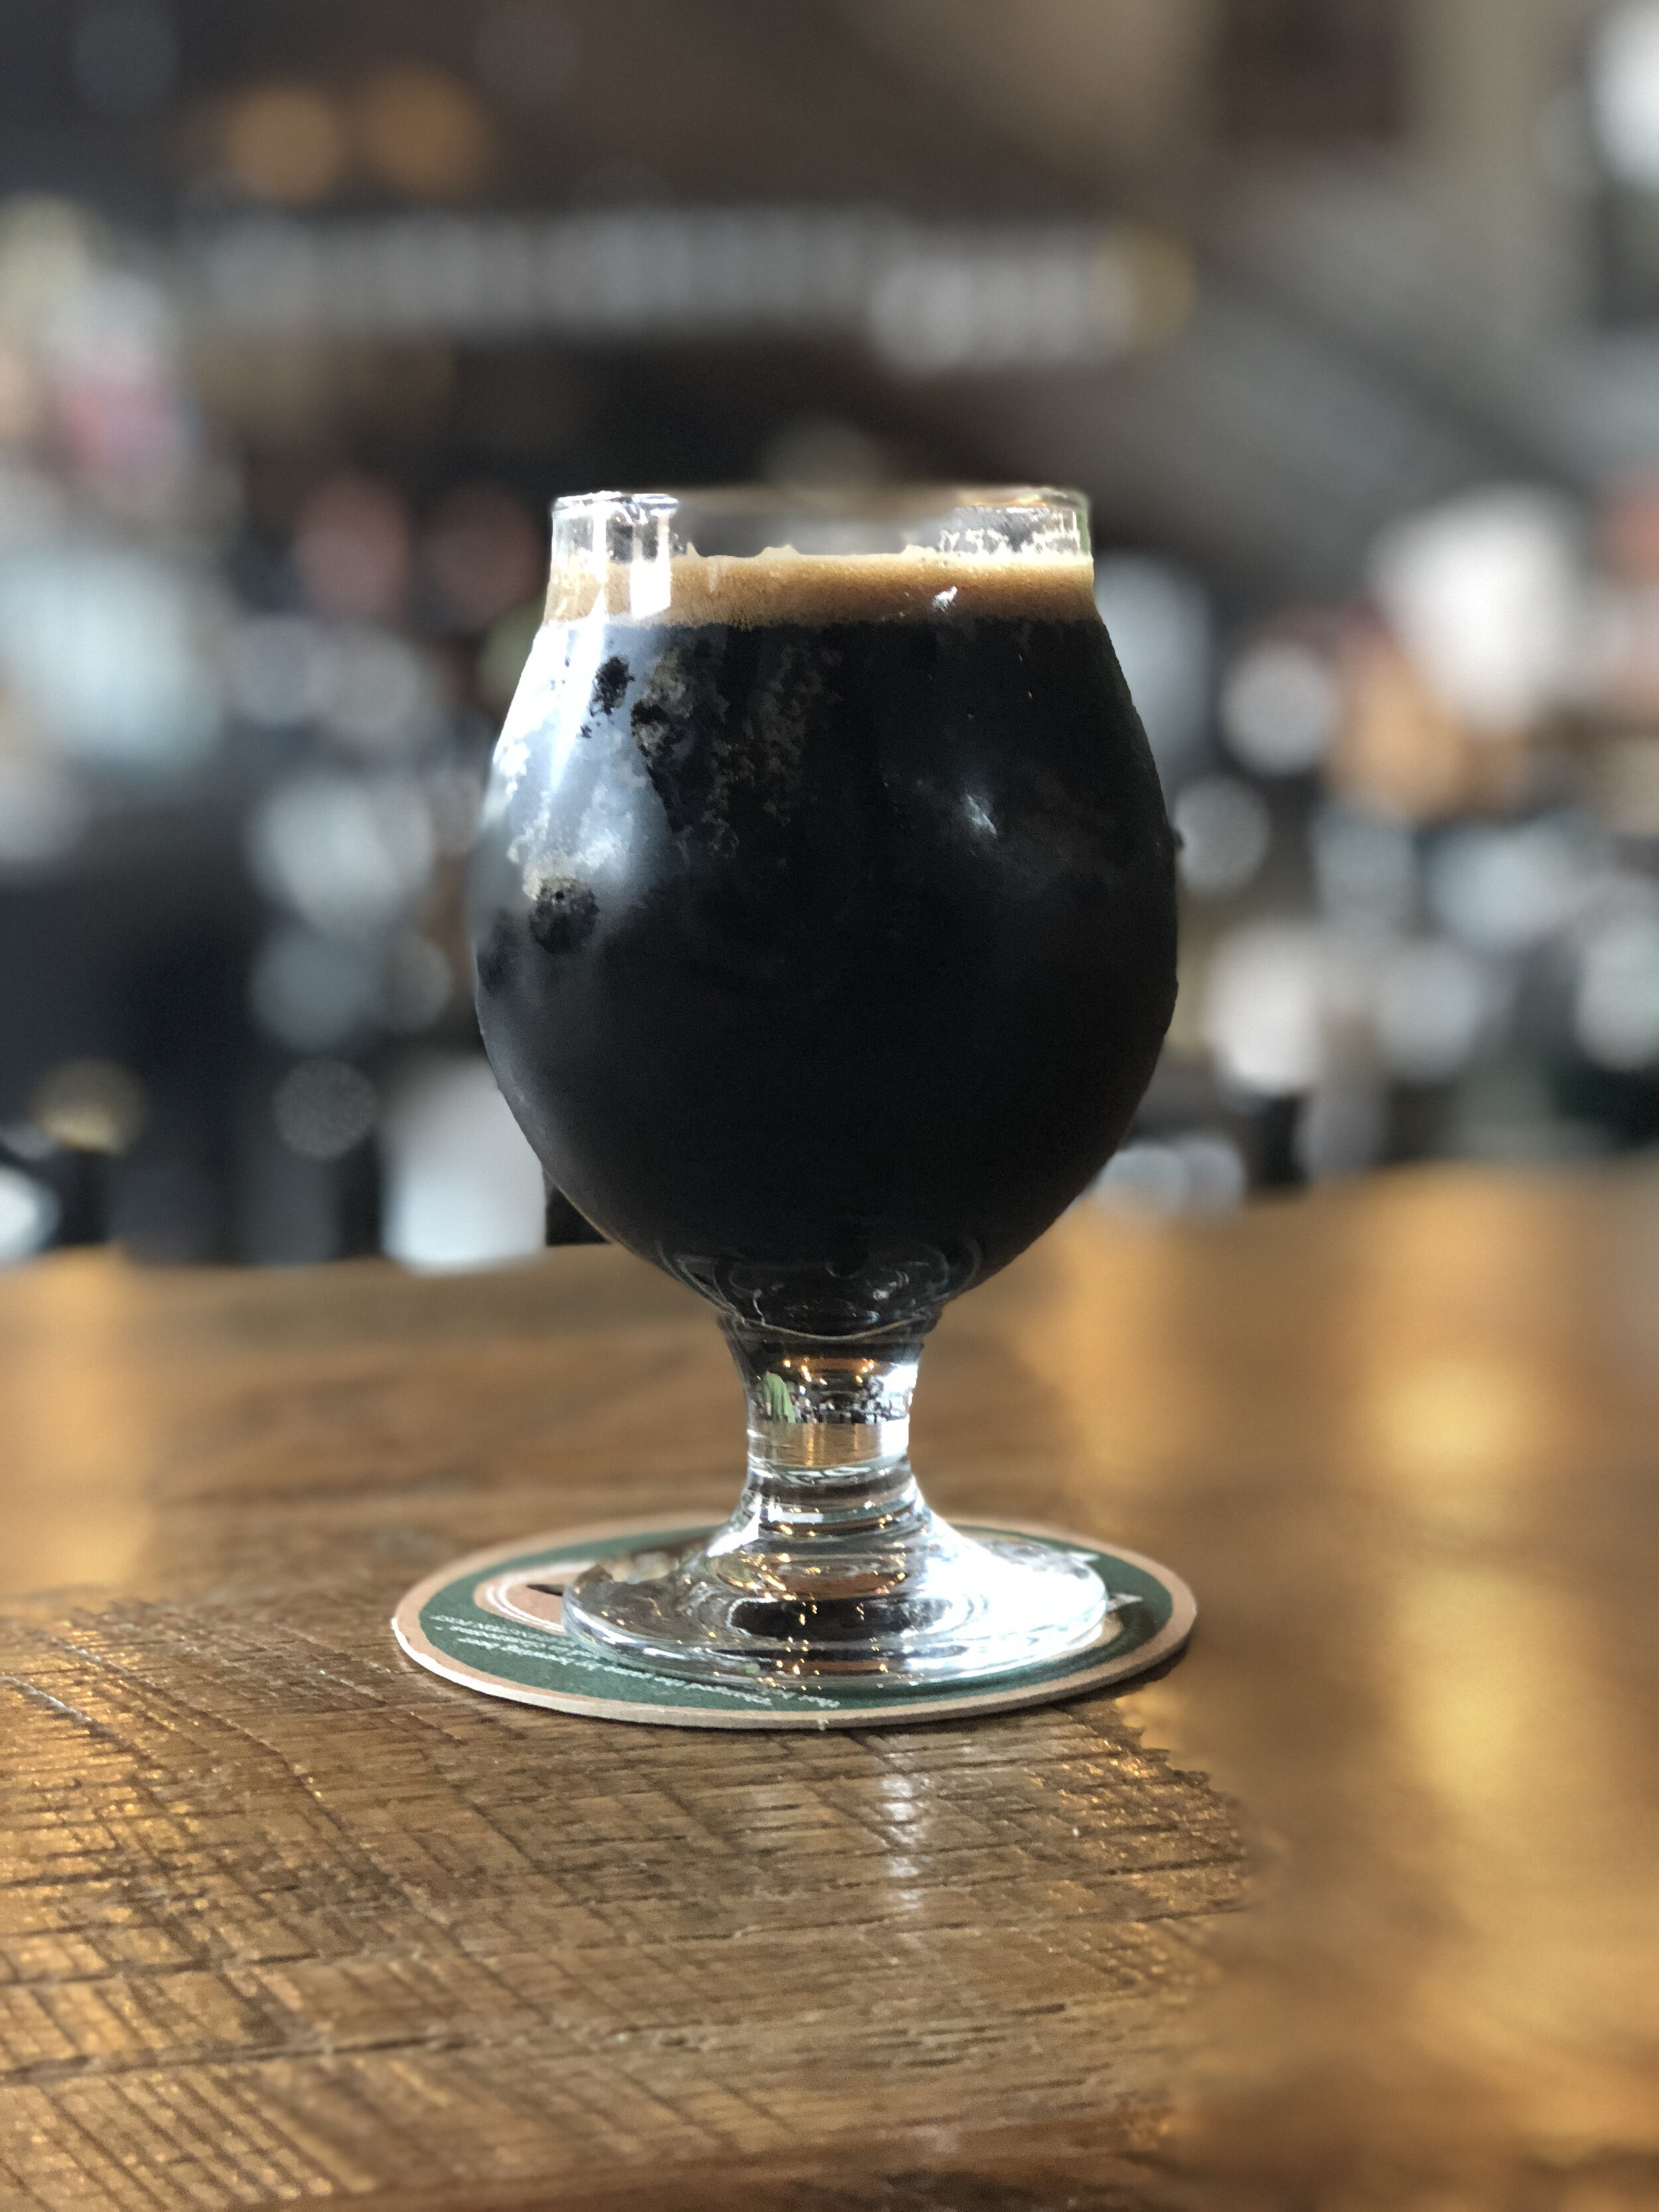 Sip a Cold One: Breweries Of Rehoboth Beach - Planning a trip to the beach? Check out these breweries while in Rehoboth Beach!